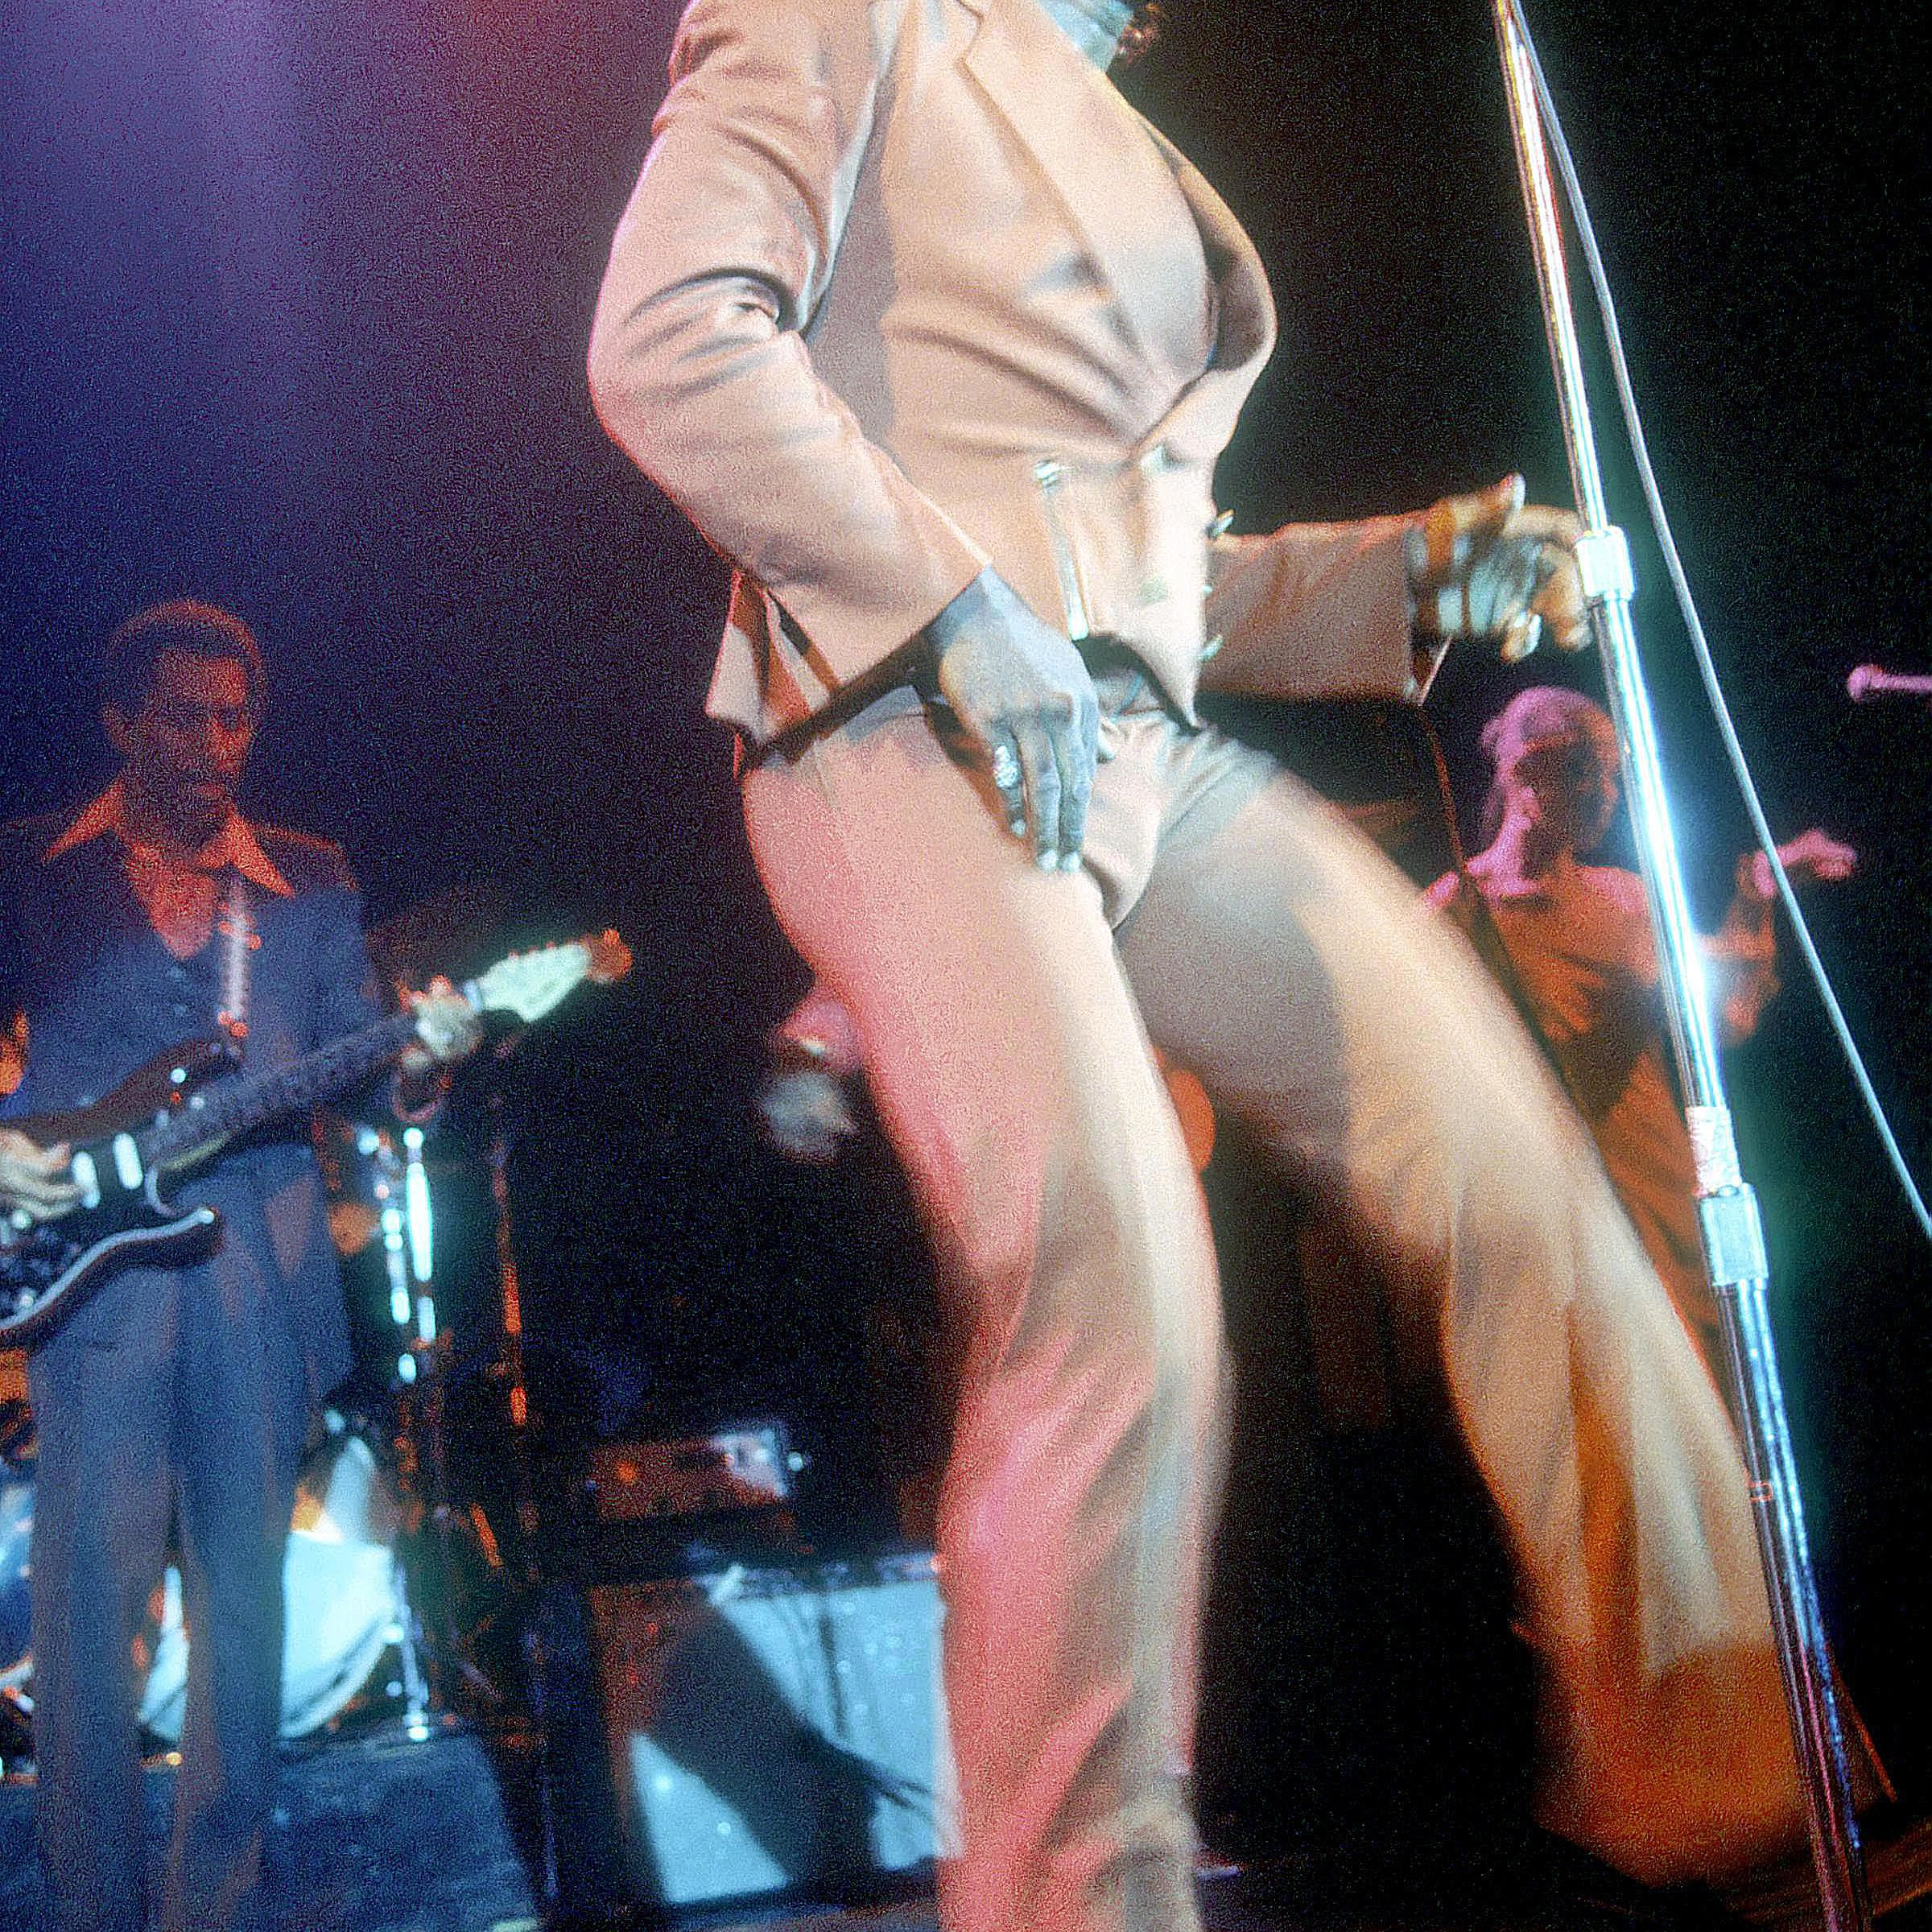 James Brown singing and dancing on stage.